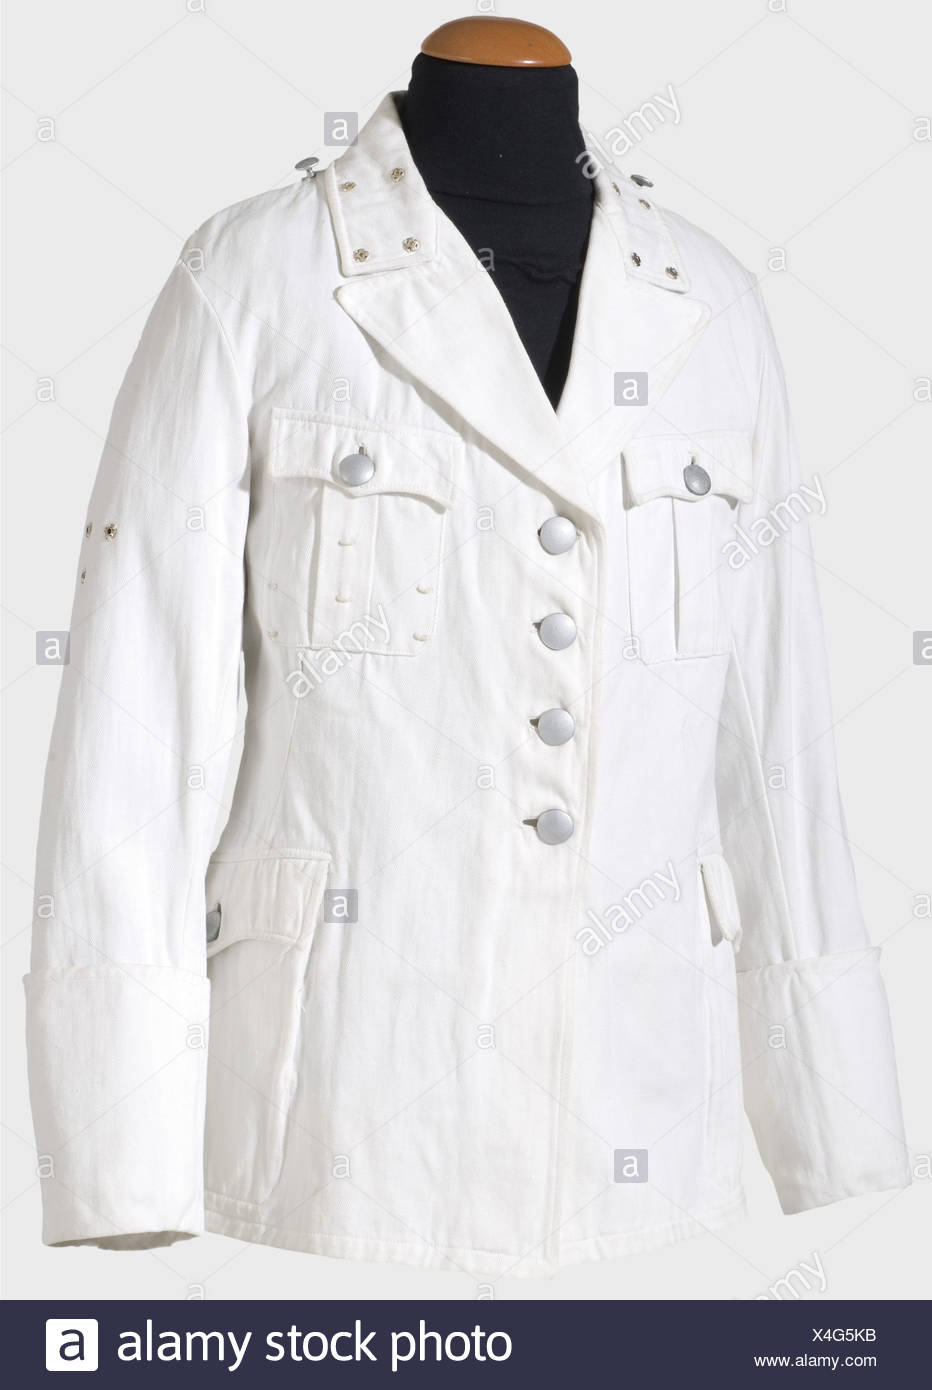 A white summer coat for a Führer, (SS-Officer) in the same cut as the black service tunic. Unlined version of white linen, silver buttons with ring attachments, snap fasteners for collar patches and sleeve eagle, screw fasteners and loops for attaching shoulder boards. Medal loops. historic, historical, 1930s, 1930s, 20th century, Waffen-SS, armed division of the SS, armed service, armed services, NS, National Socialism, Nazism, Third Reich, German Reich, Germany, military, militaria, utensil, piece of equipment, utensils, object, objects, stills, clipping, cli, Additional-Rights-Clearances-NA - Stock Image